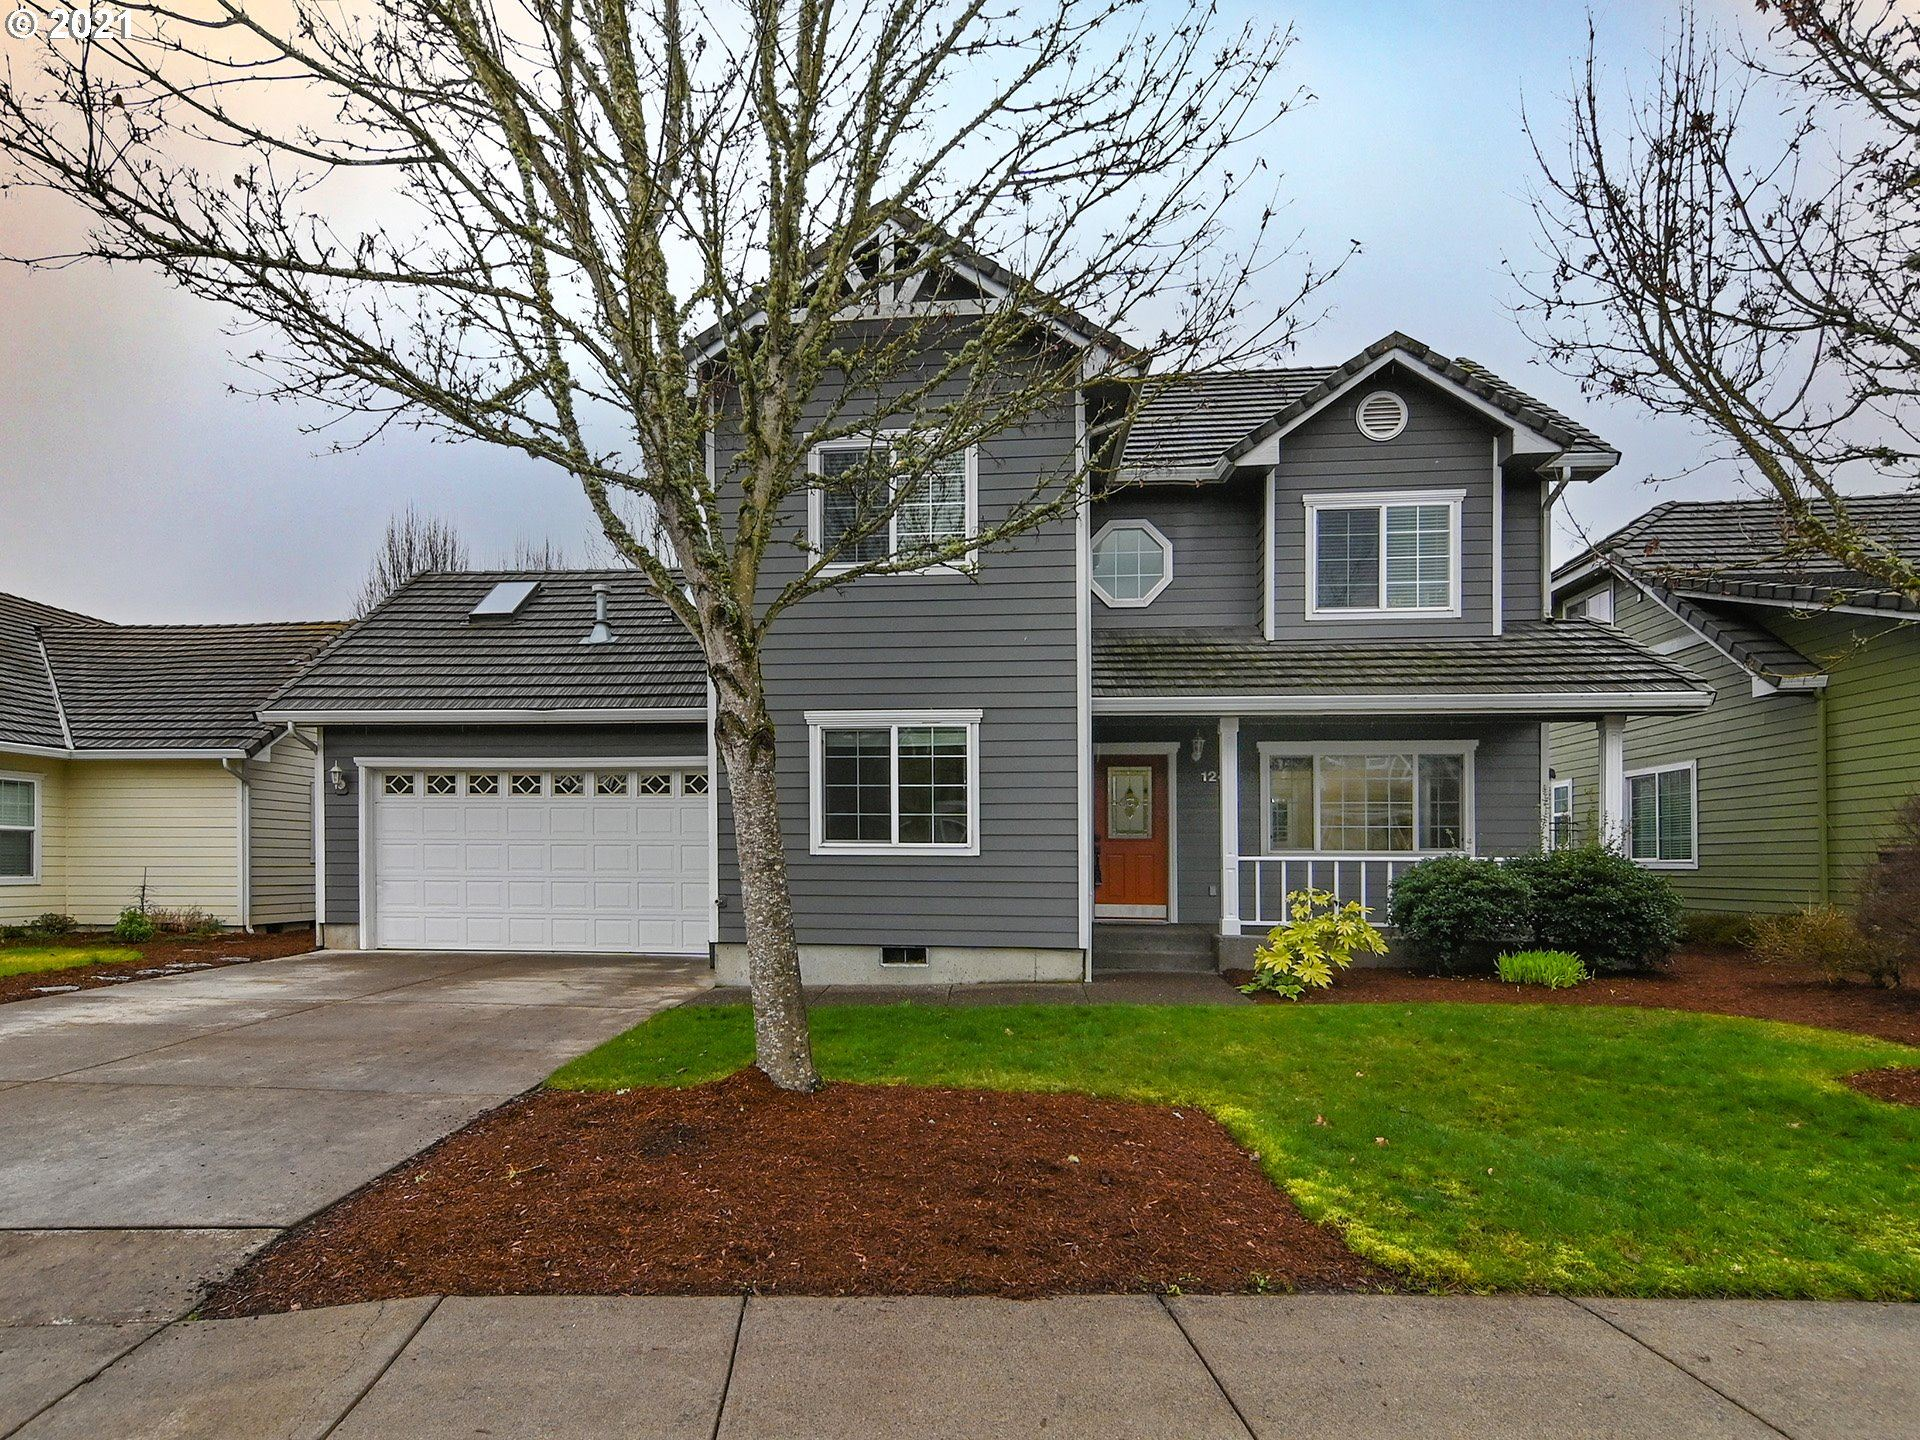 Photo for 1241 MASTERS AVE, Creswell, OR 97426 (MLS # 21476928)